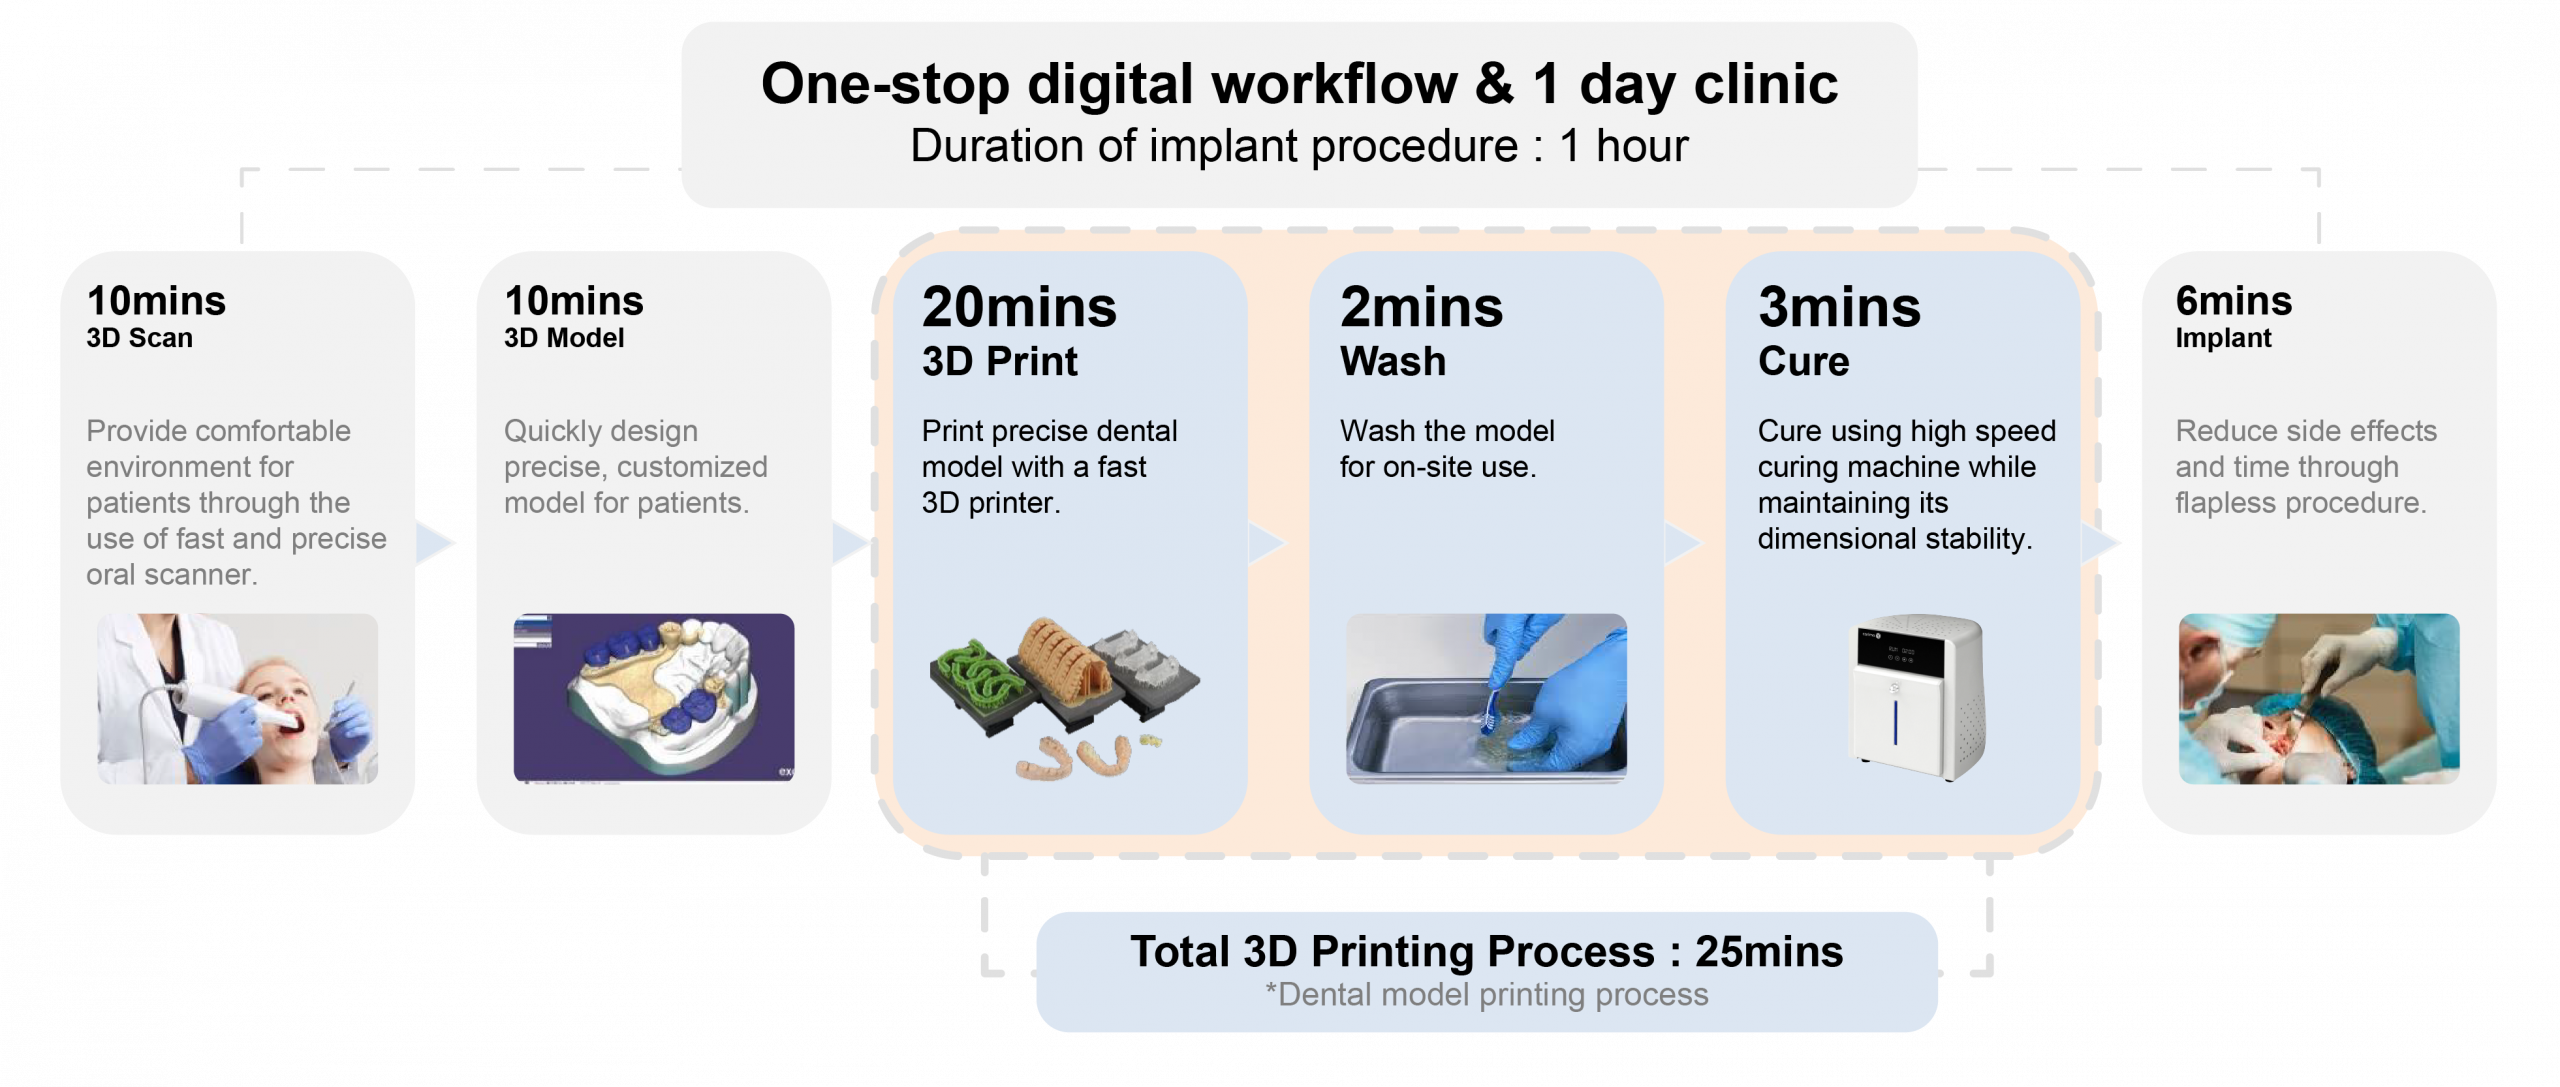 Carima's one-stop digital workflow